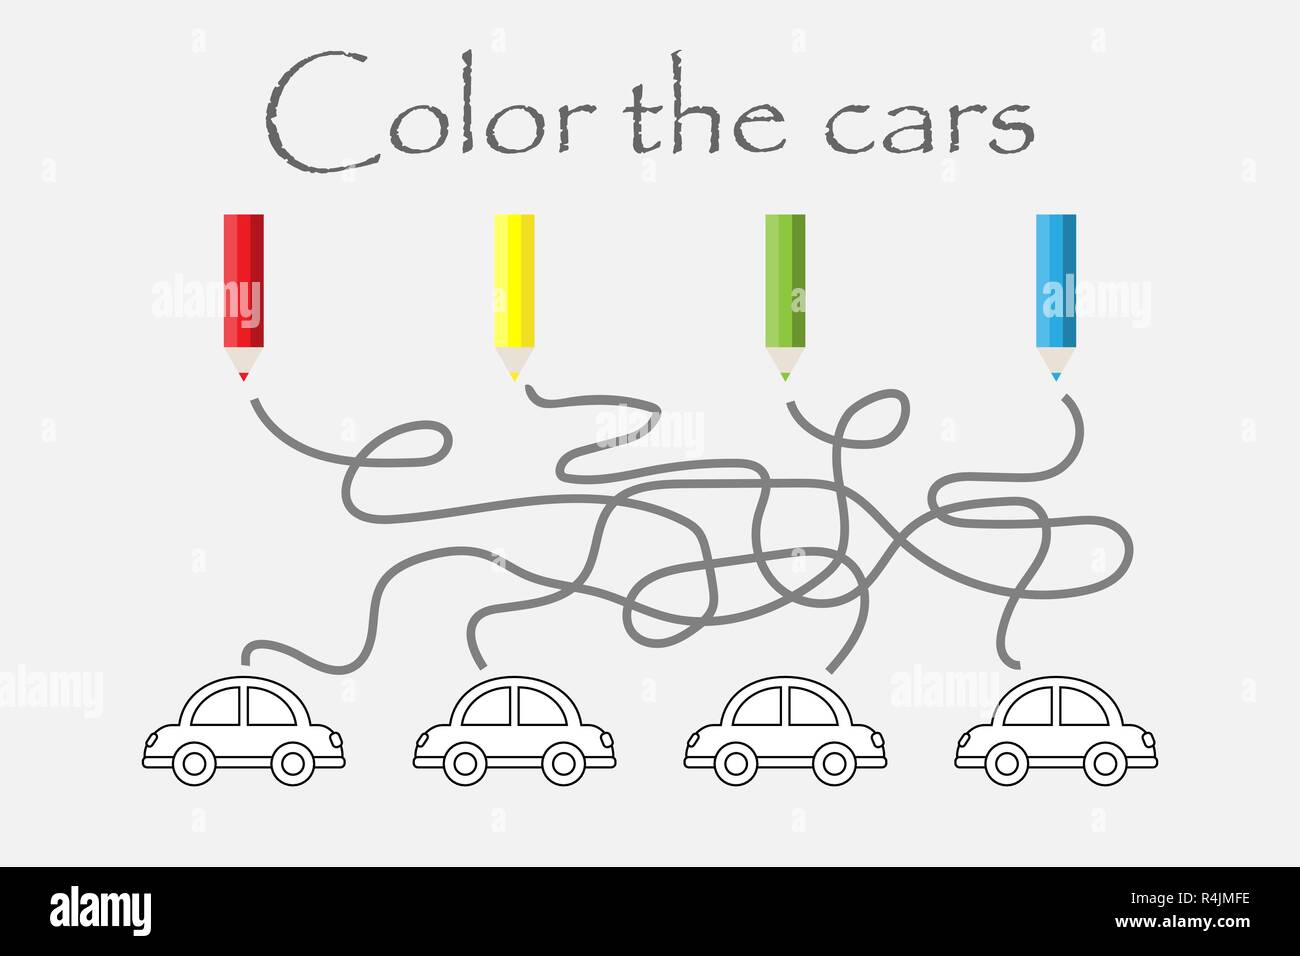 Labyrinth Game Maze And Coloring The Cars Preschool